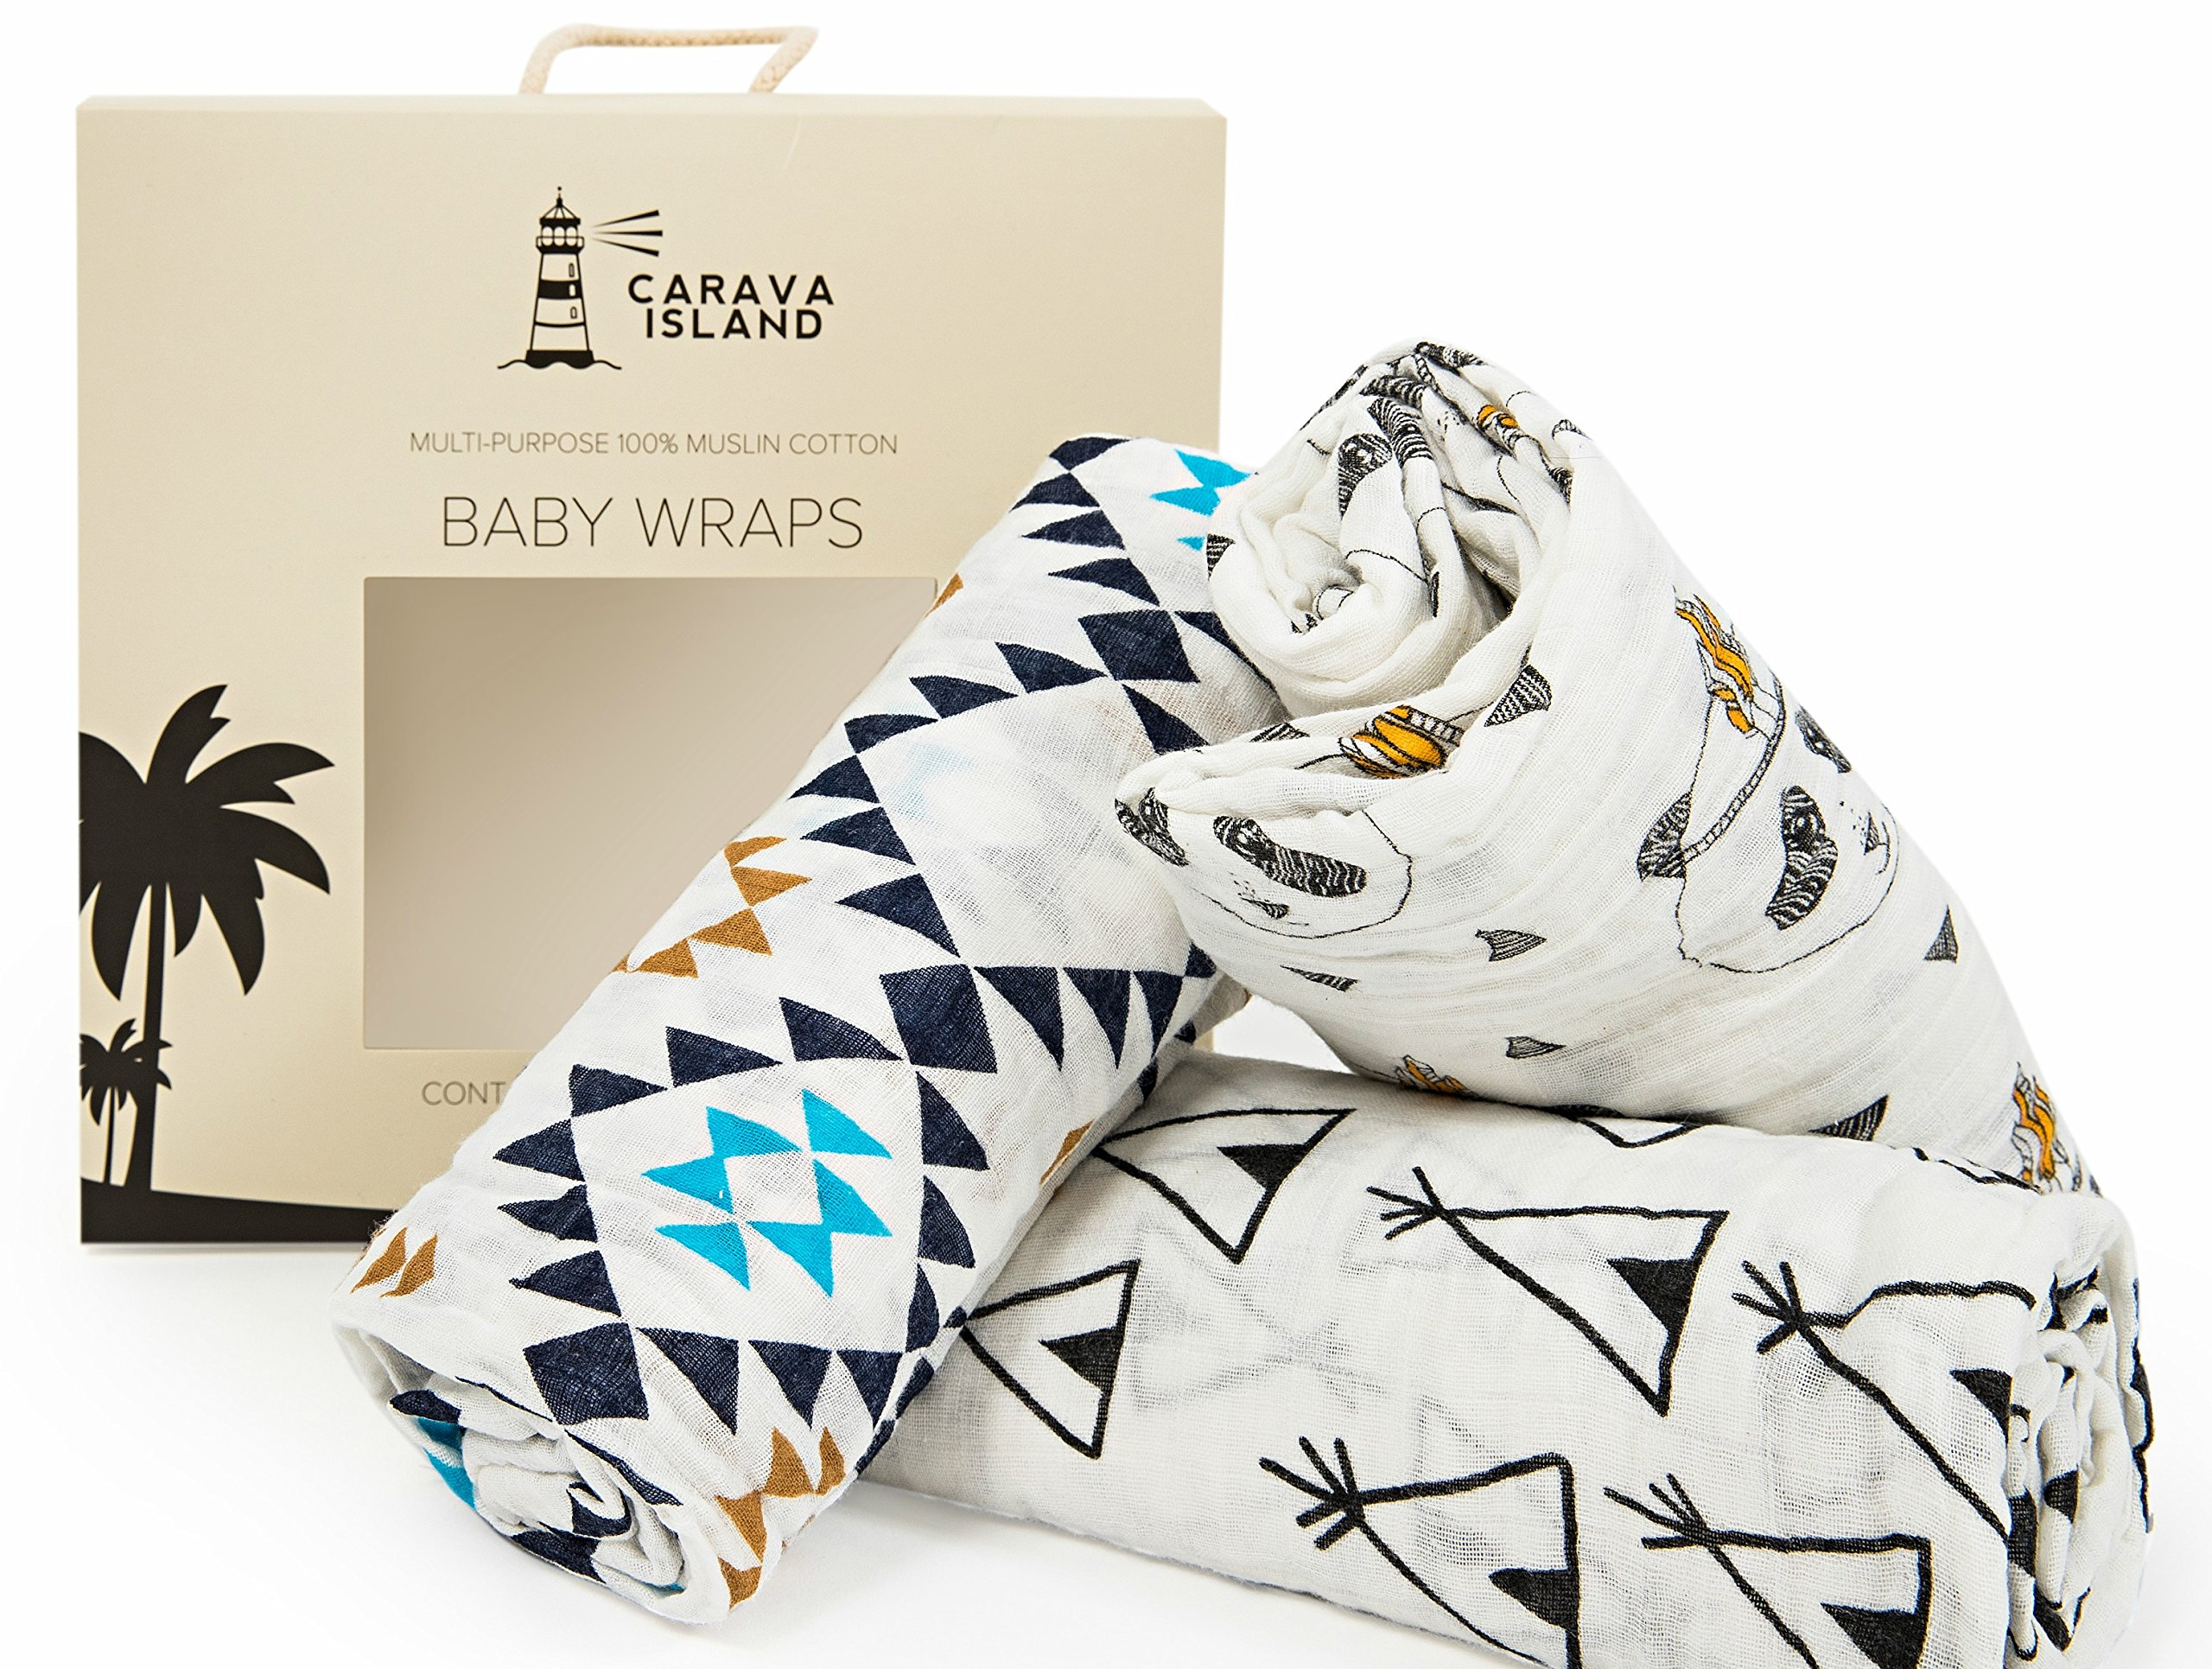 Premium Baby Swaddle Blankets By Carava Island | 100% Cotton Pre-Washed Muslin Receiving Blankets | Variety 3 Pack | Perfect Nursery Accessory And Baby Shower Gift